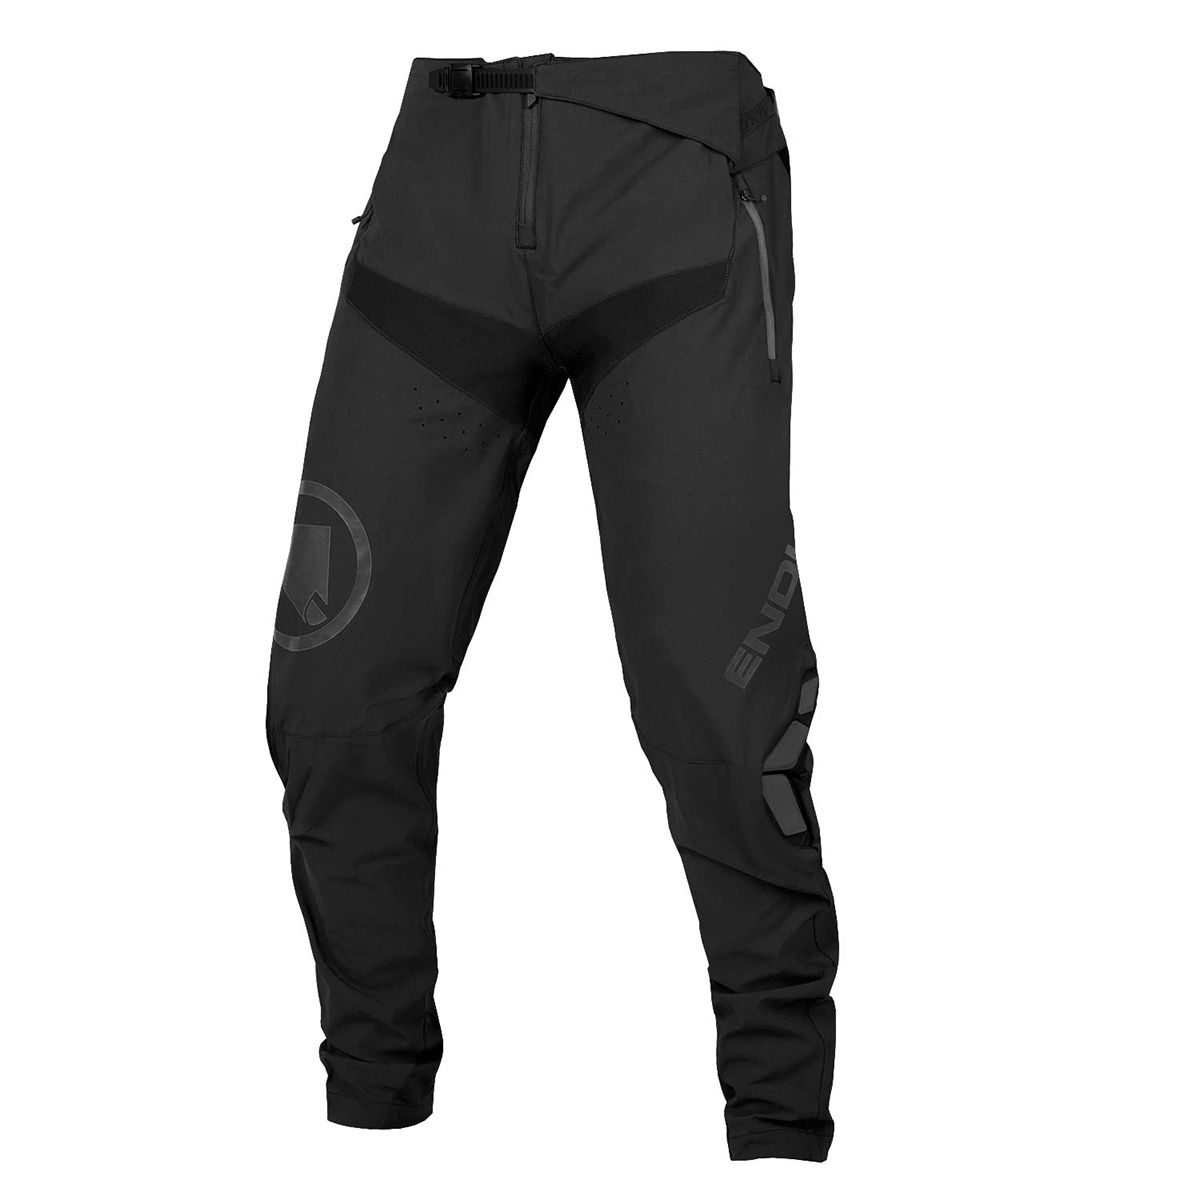 MT500 BURNER PANT II Men